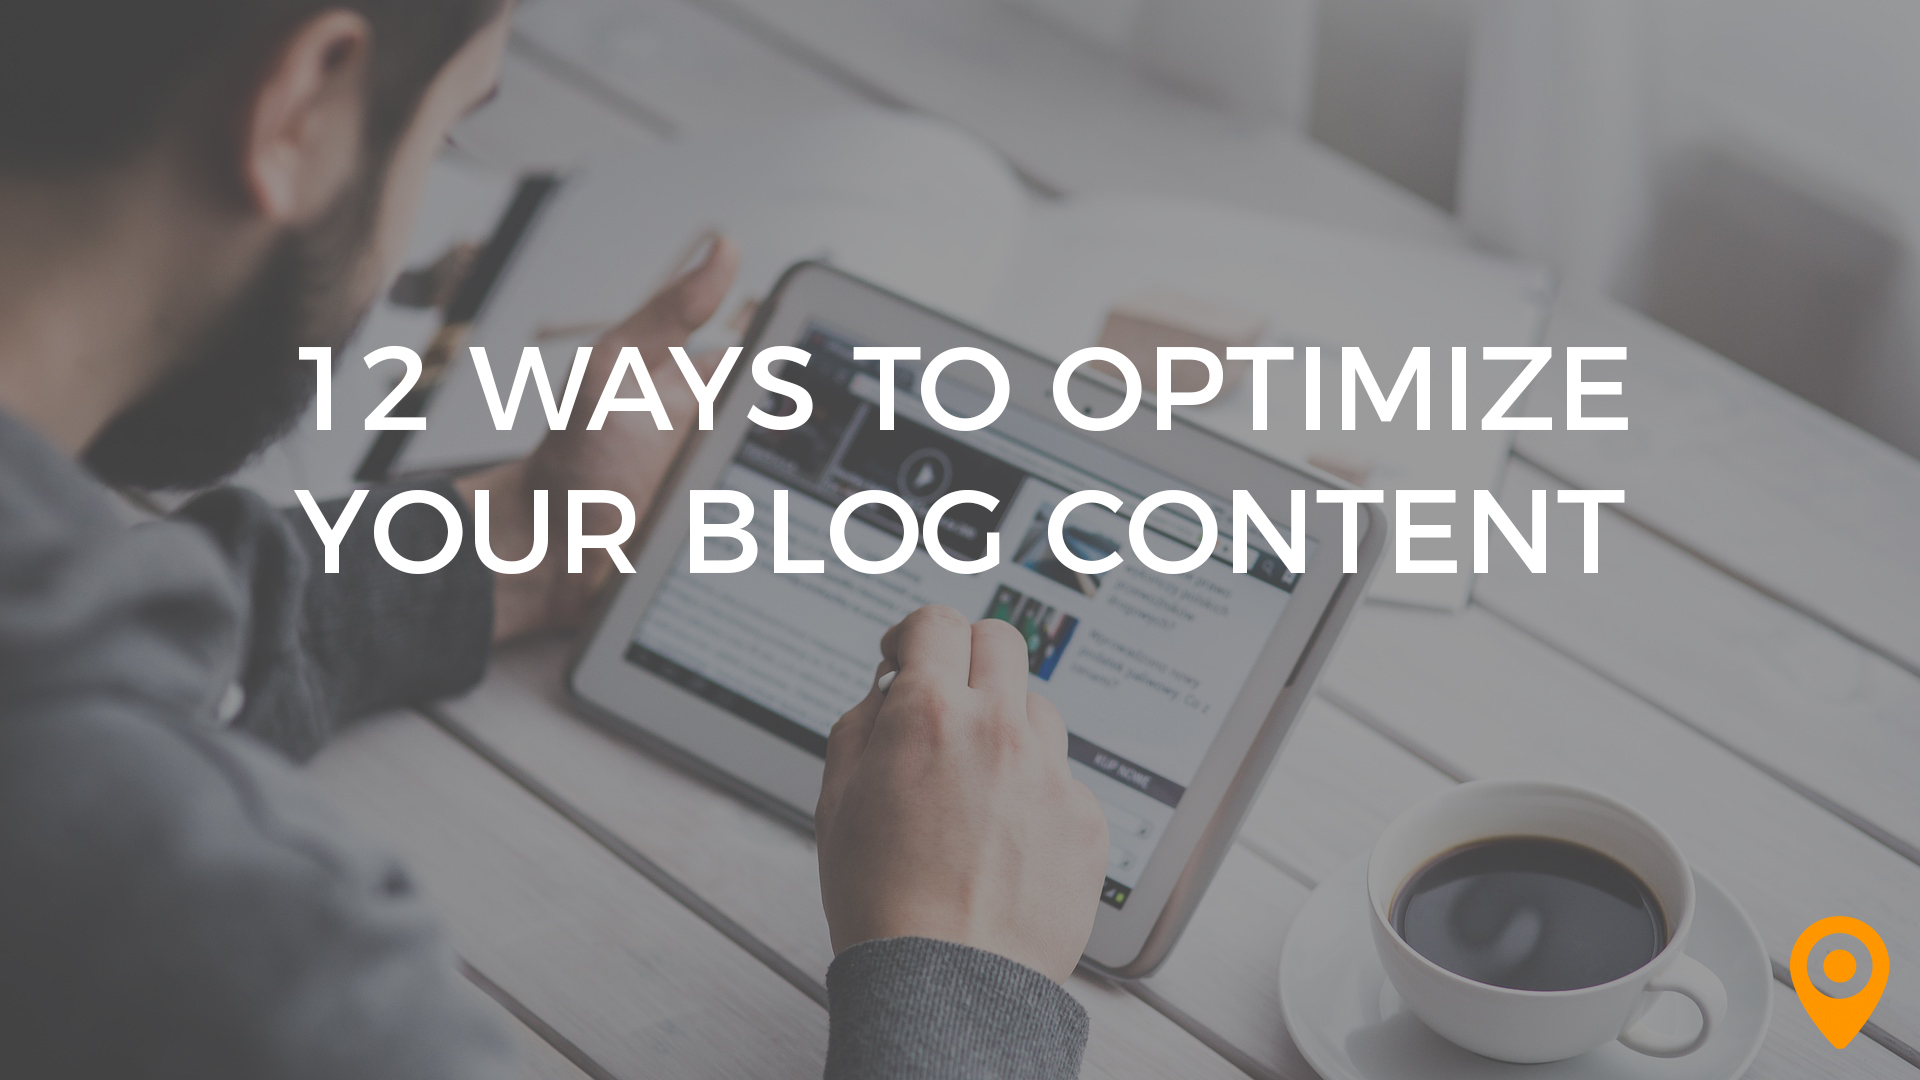 2 ways to optimize your blog content